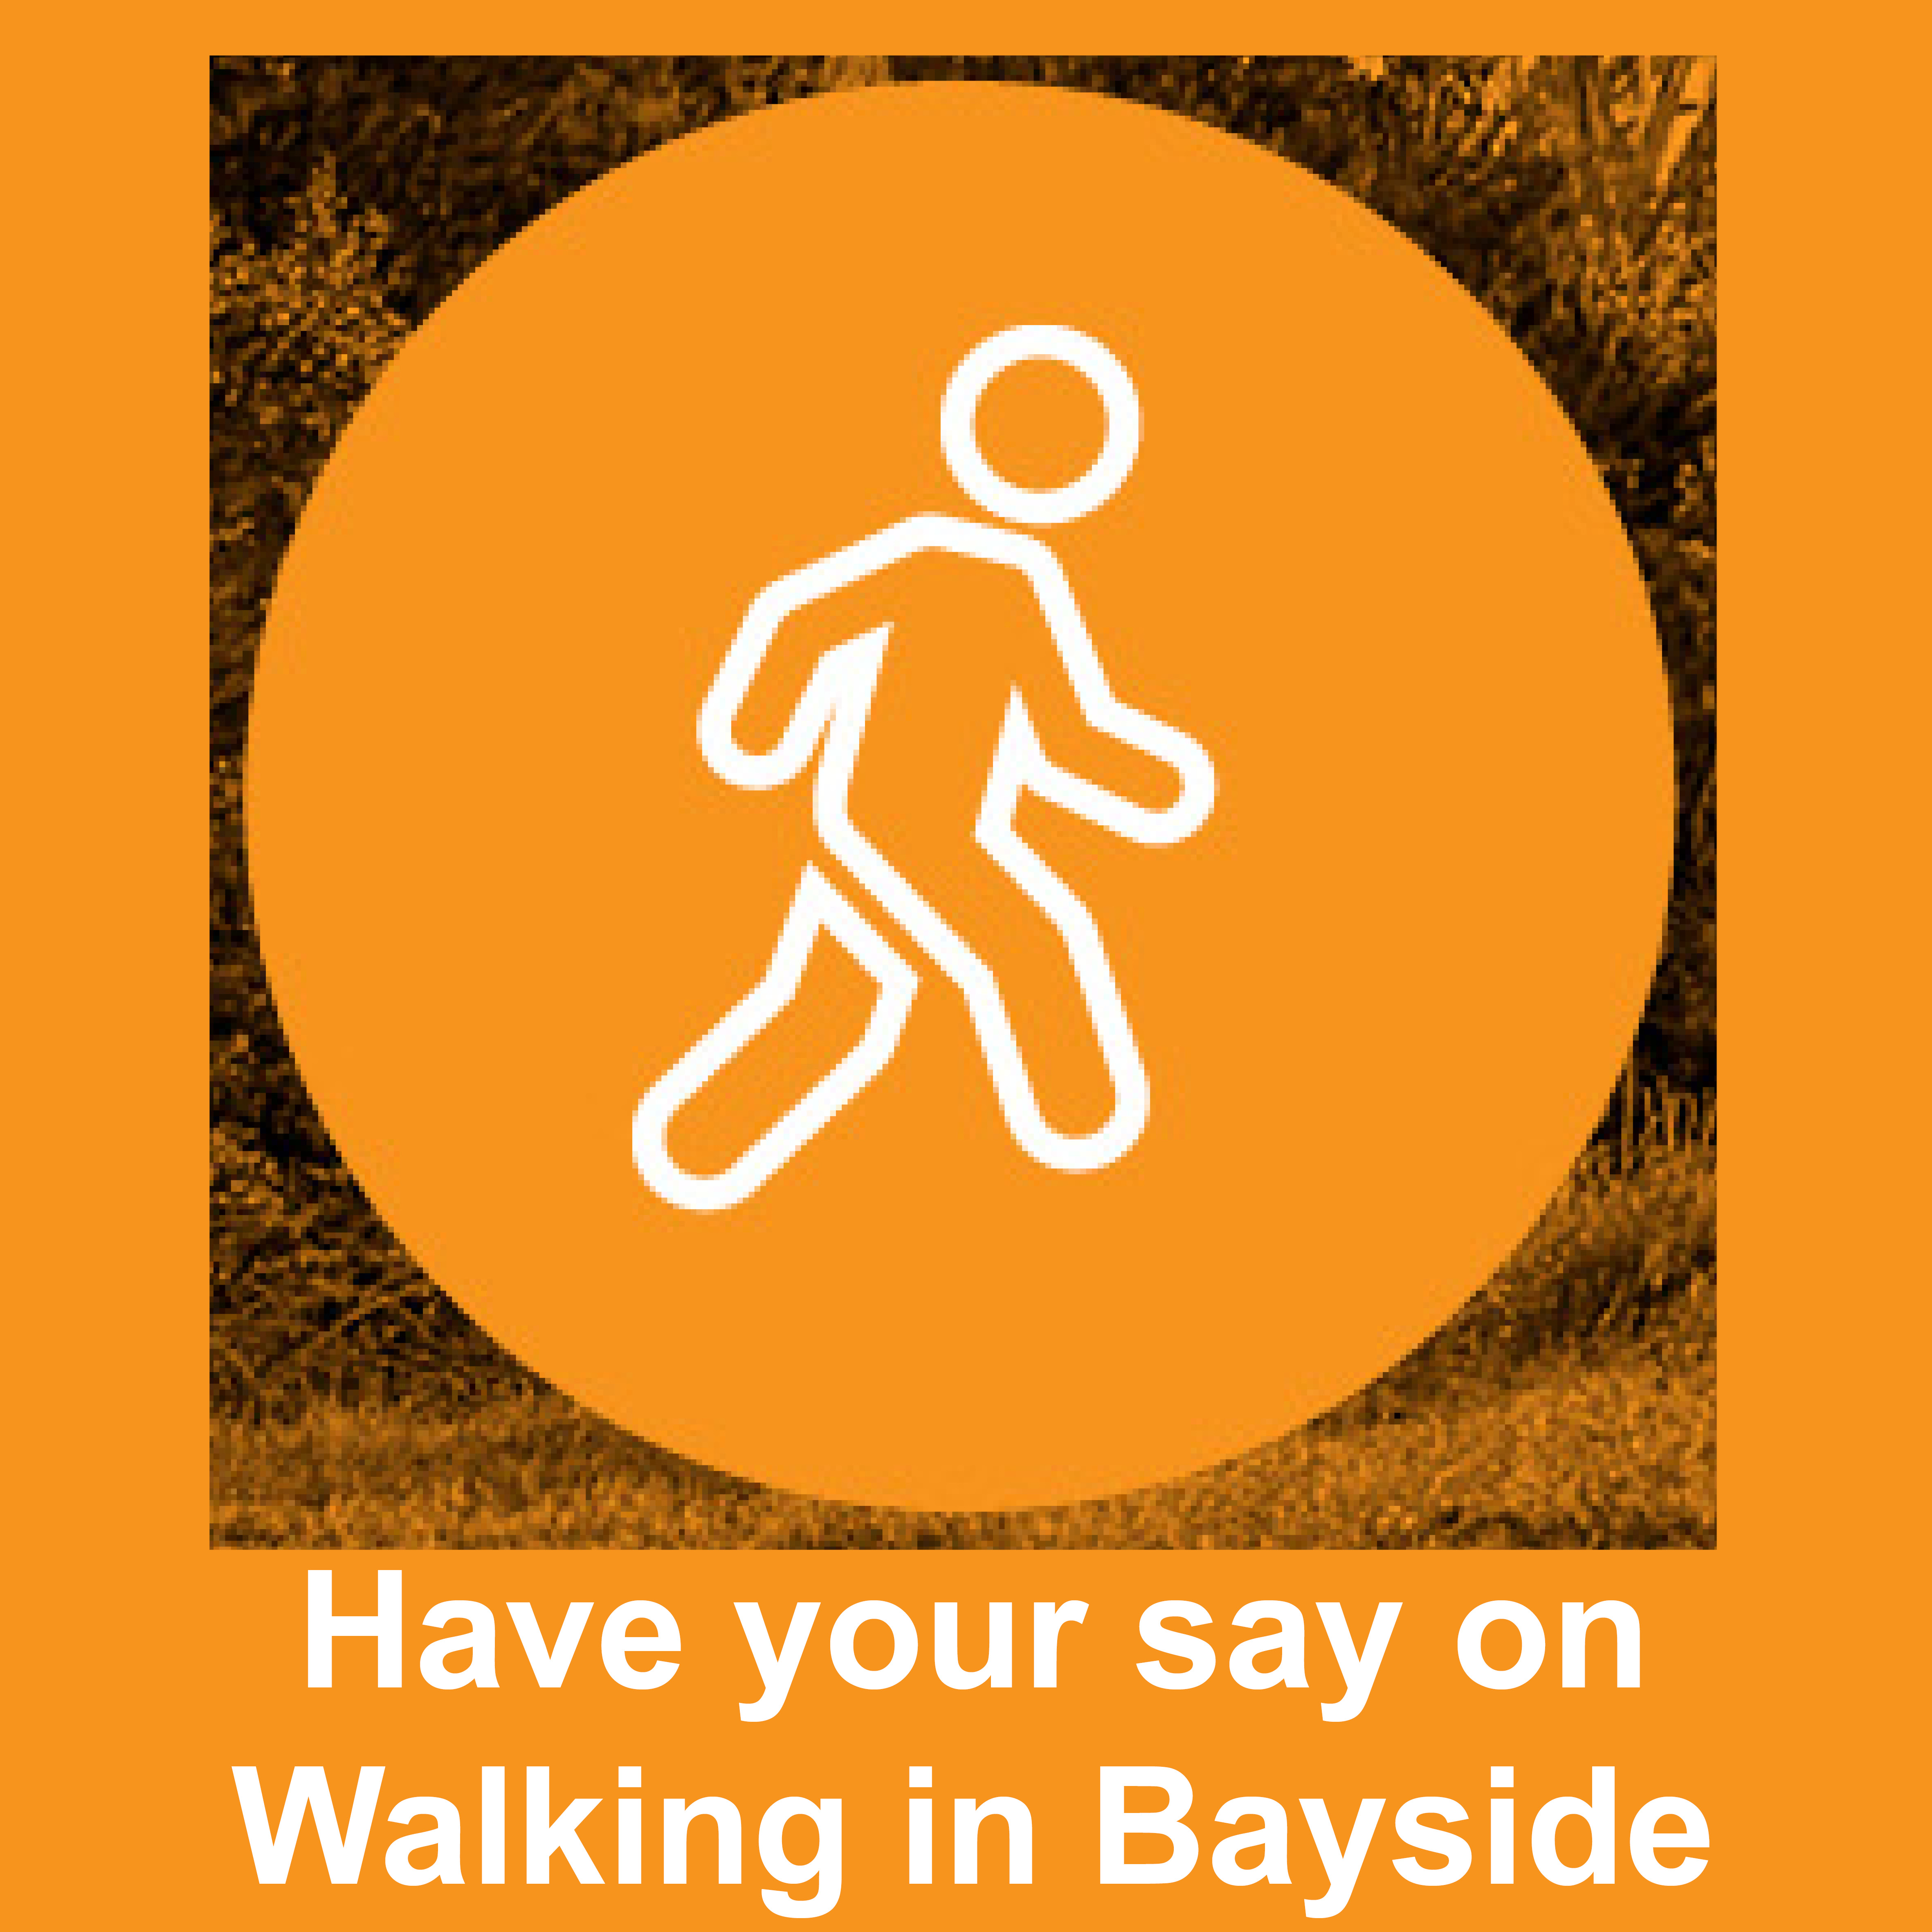 Have your say on walking in Bayside